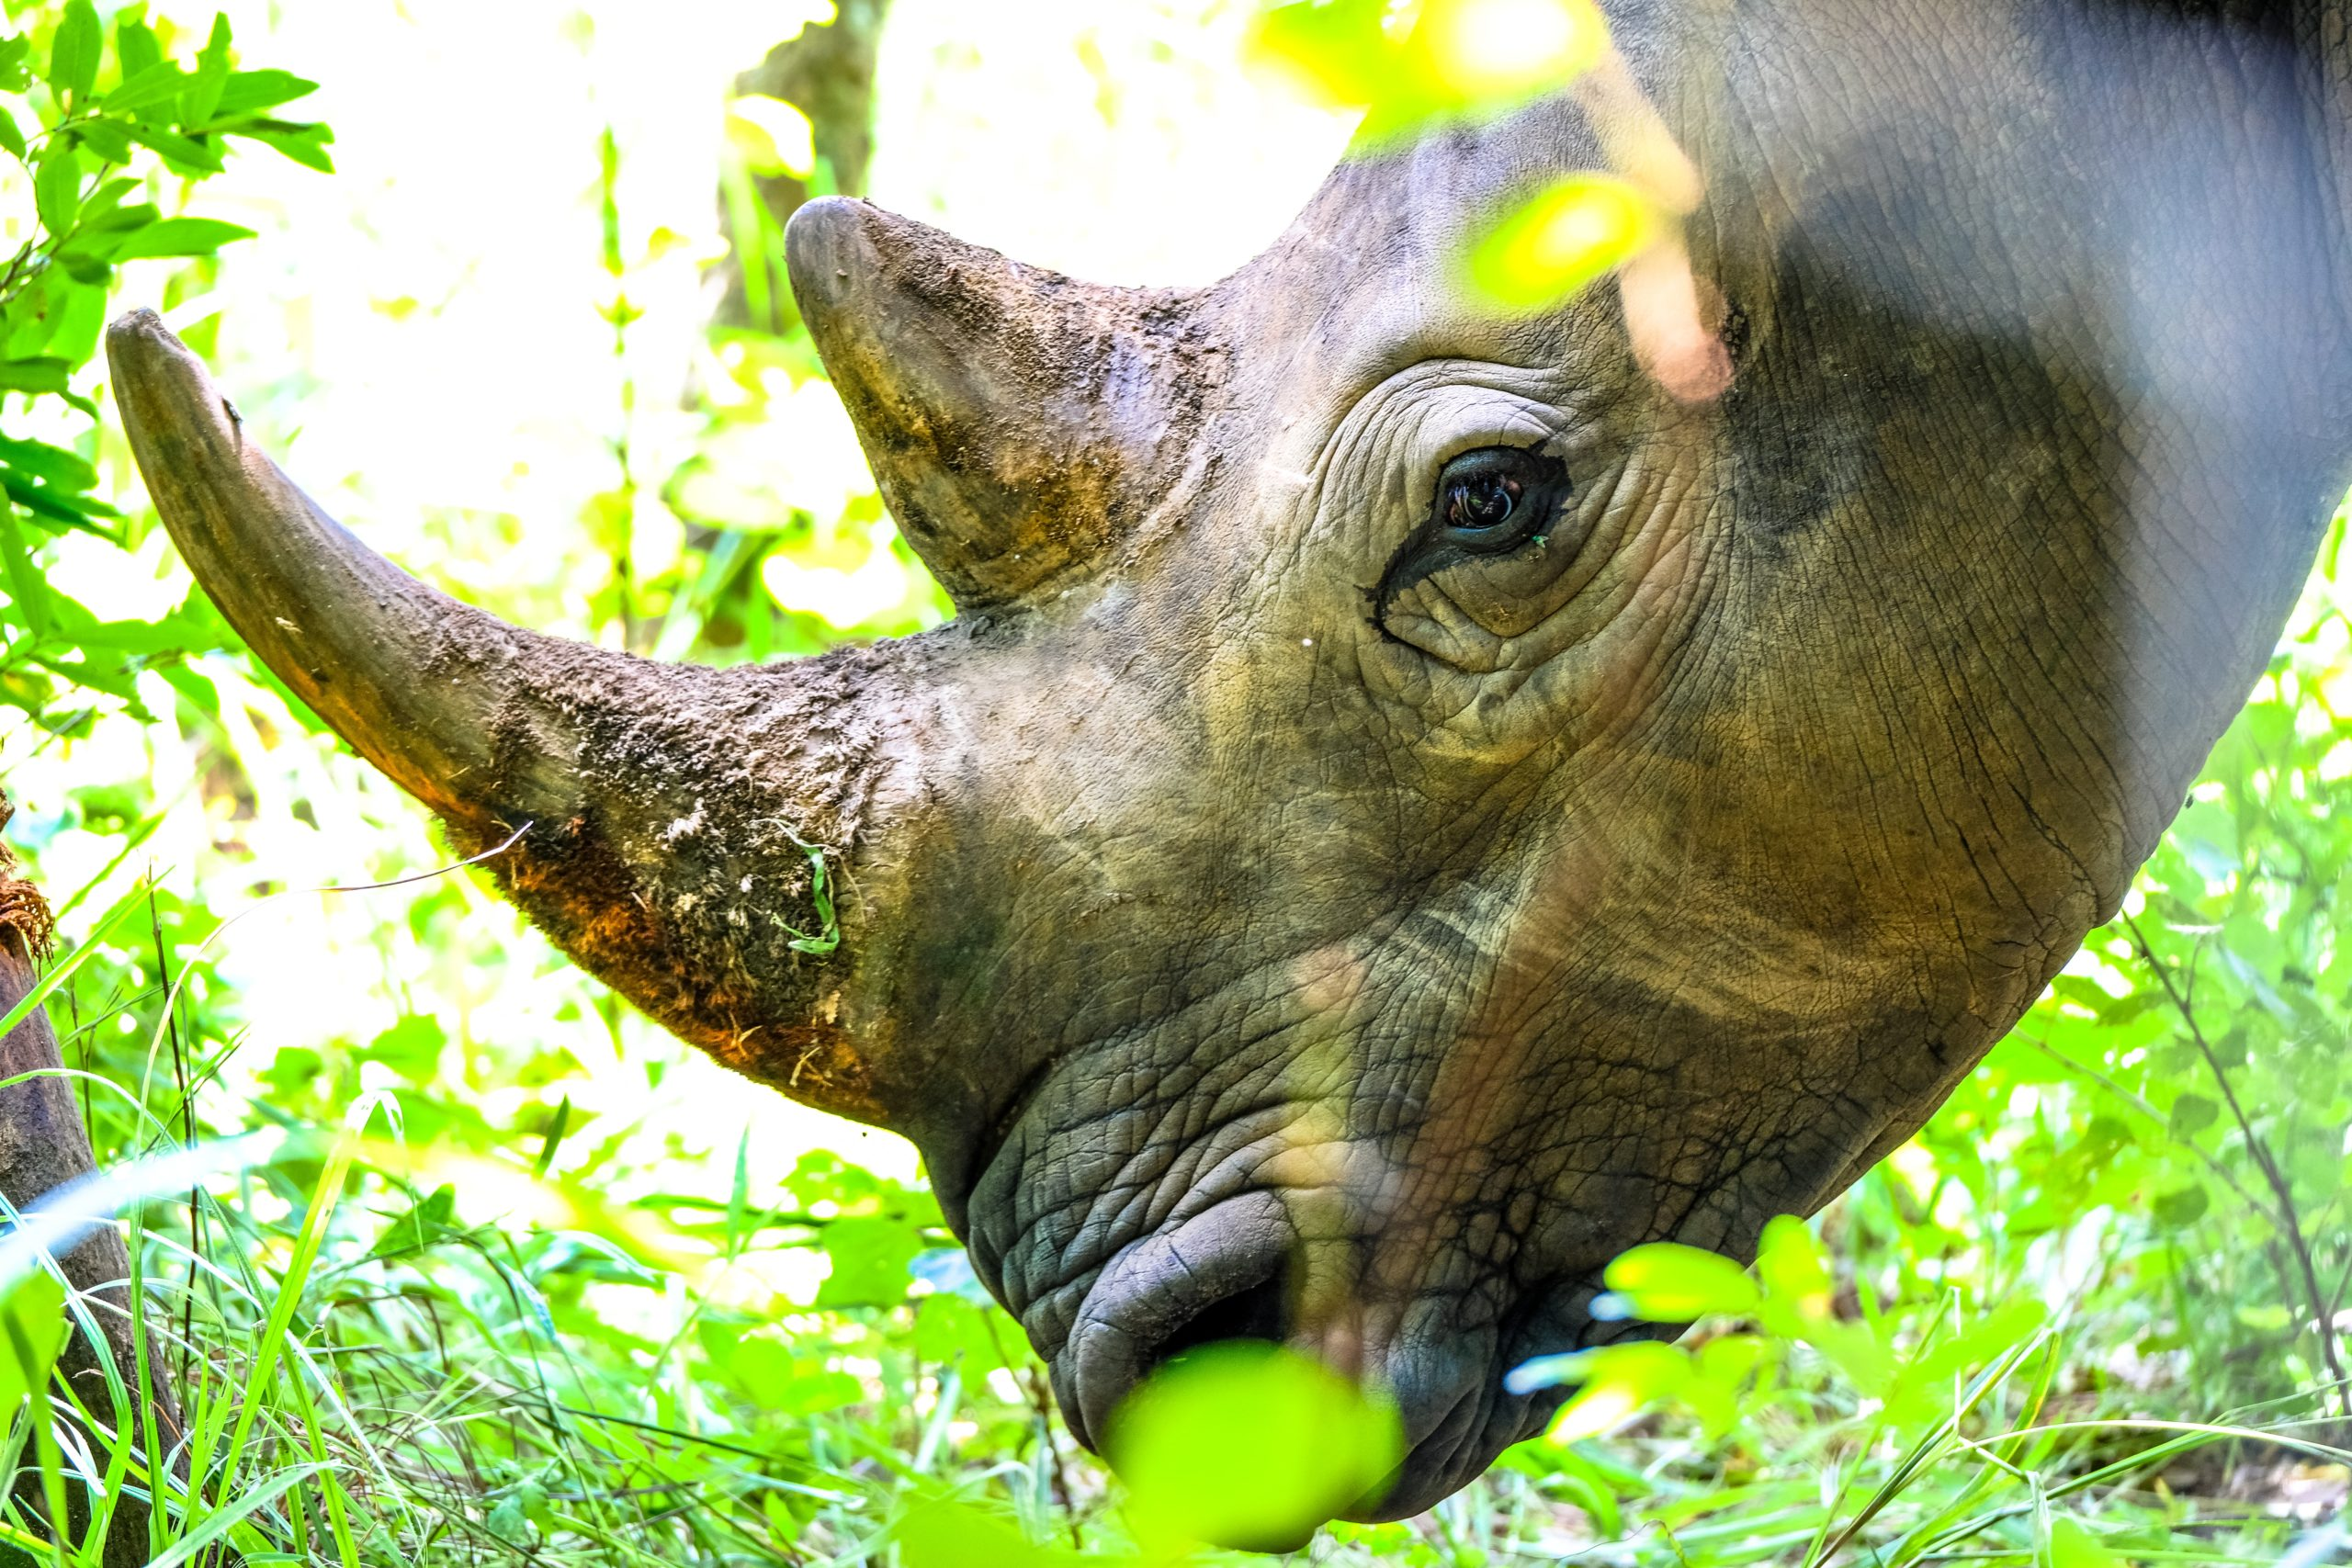 rhino Photo by Francesco Ungaro from Pexels